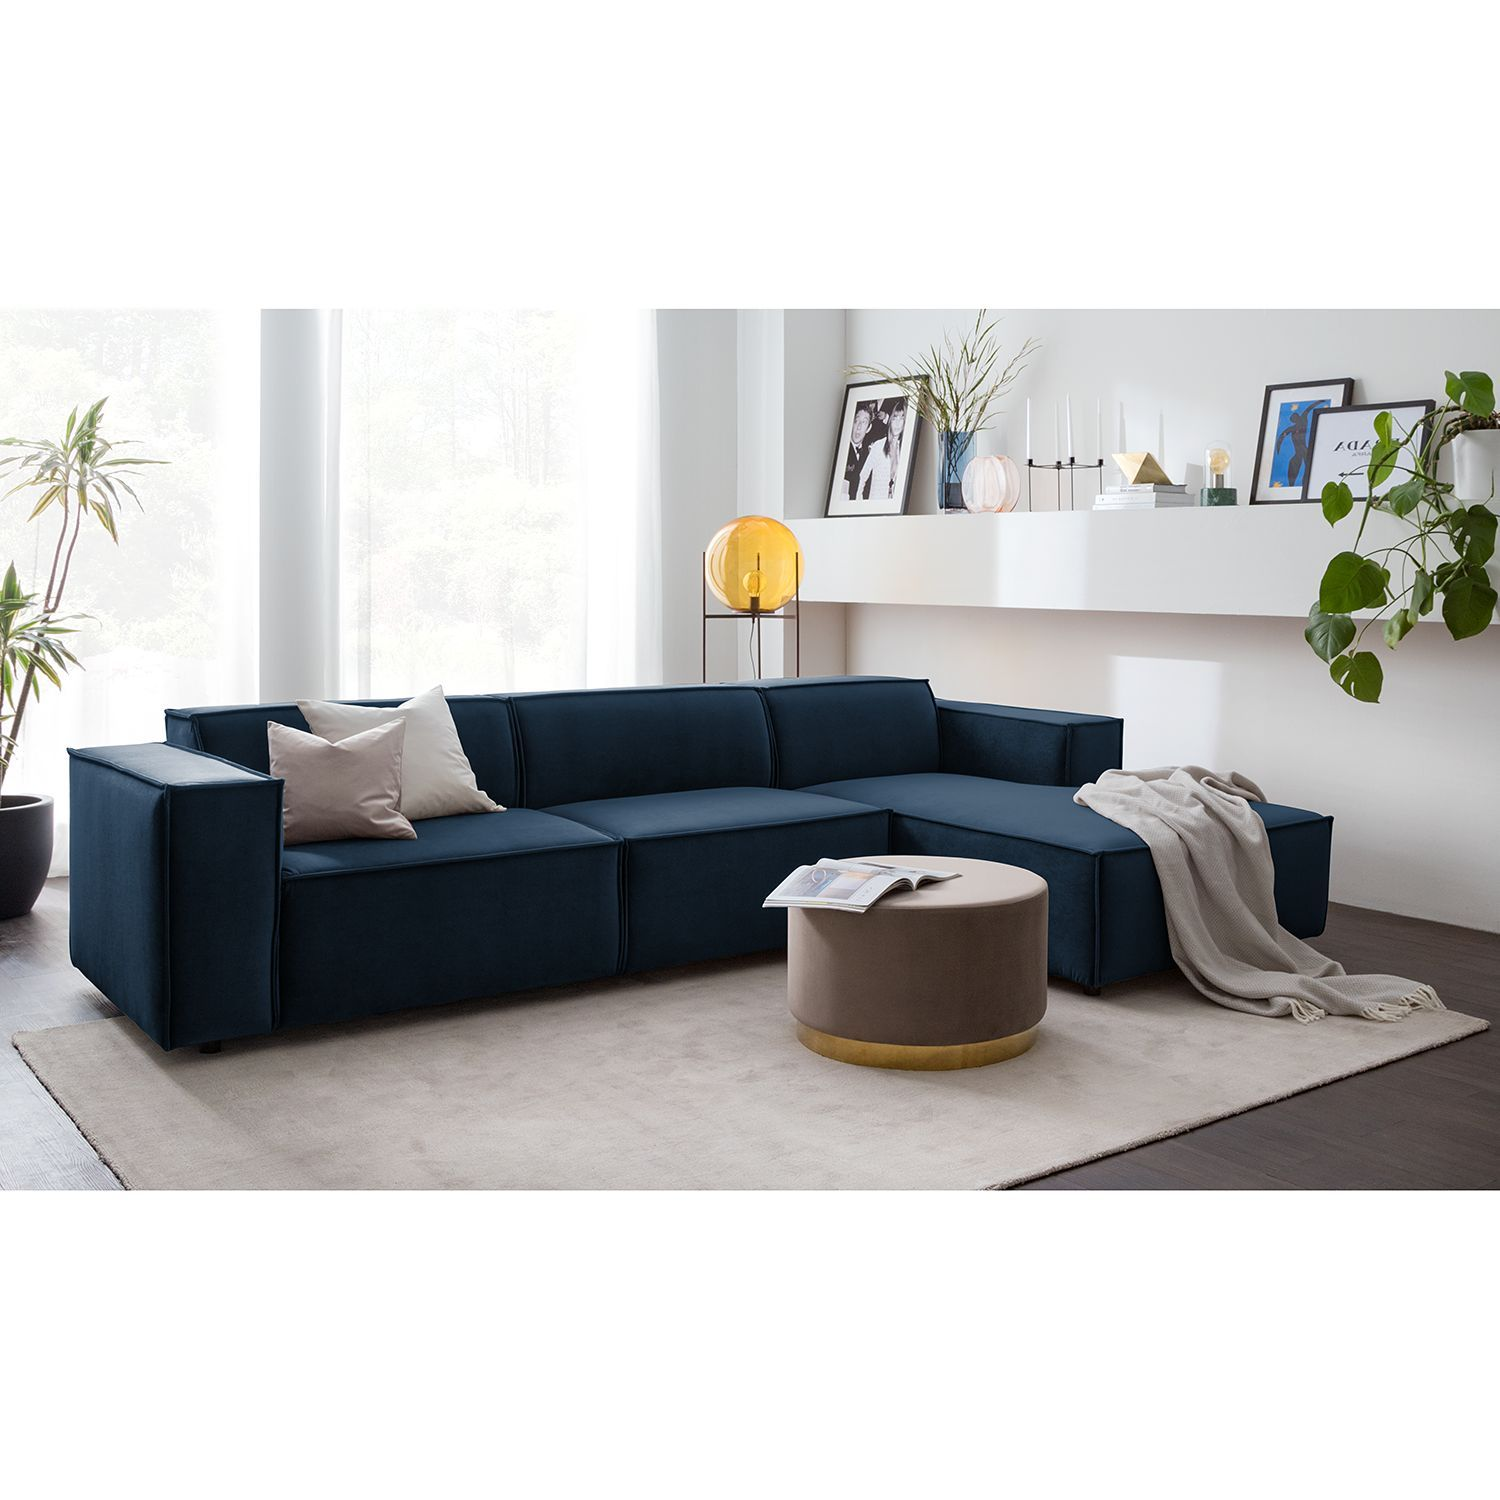 Ecksofa 2019Sofasamp; Couches V Kinx Home24 CouchSofaFurniture In H2IEWD9